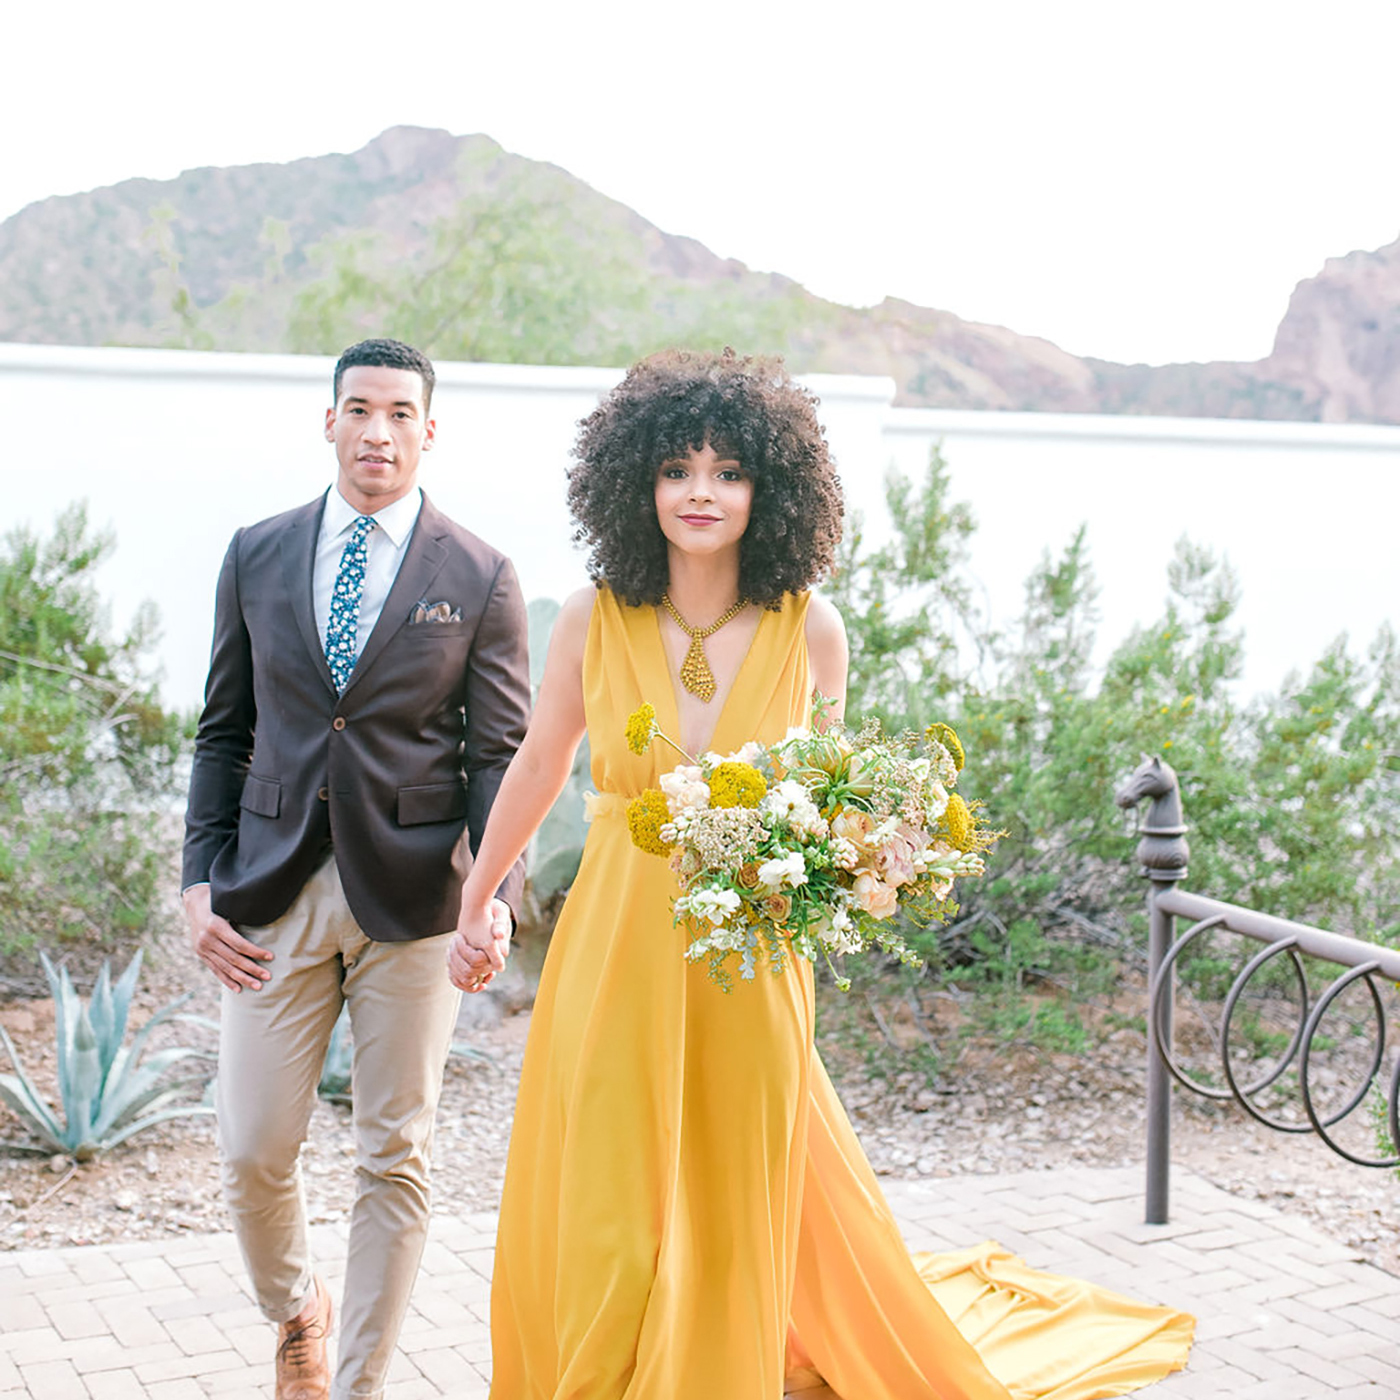 elopement at el chorro - Marisabelle Photography